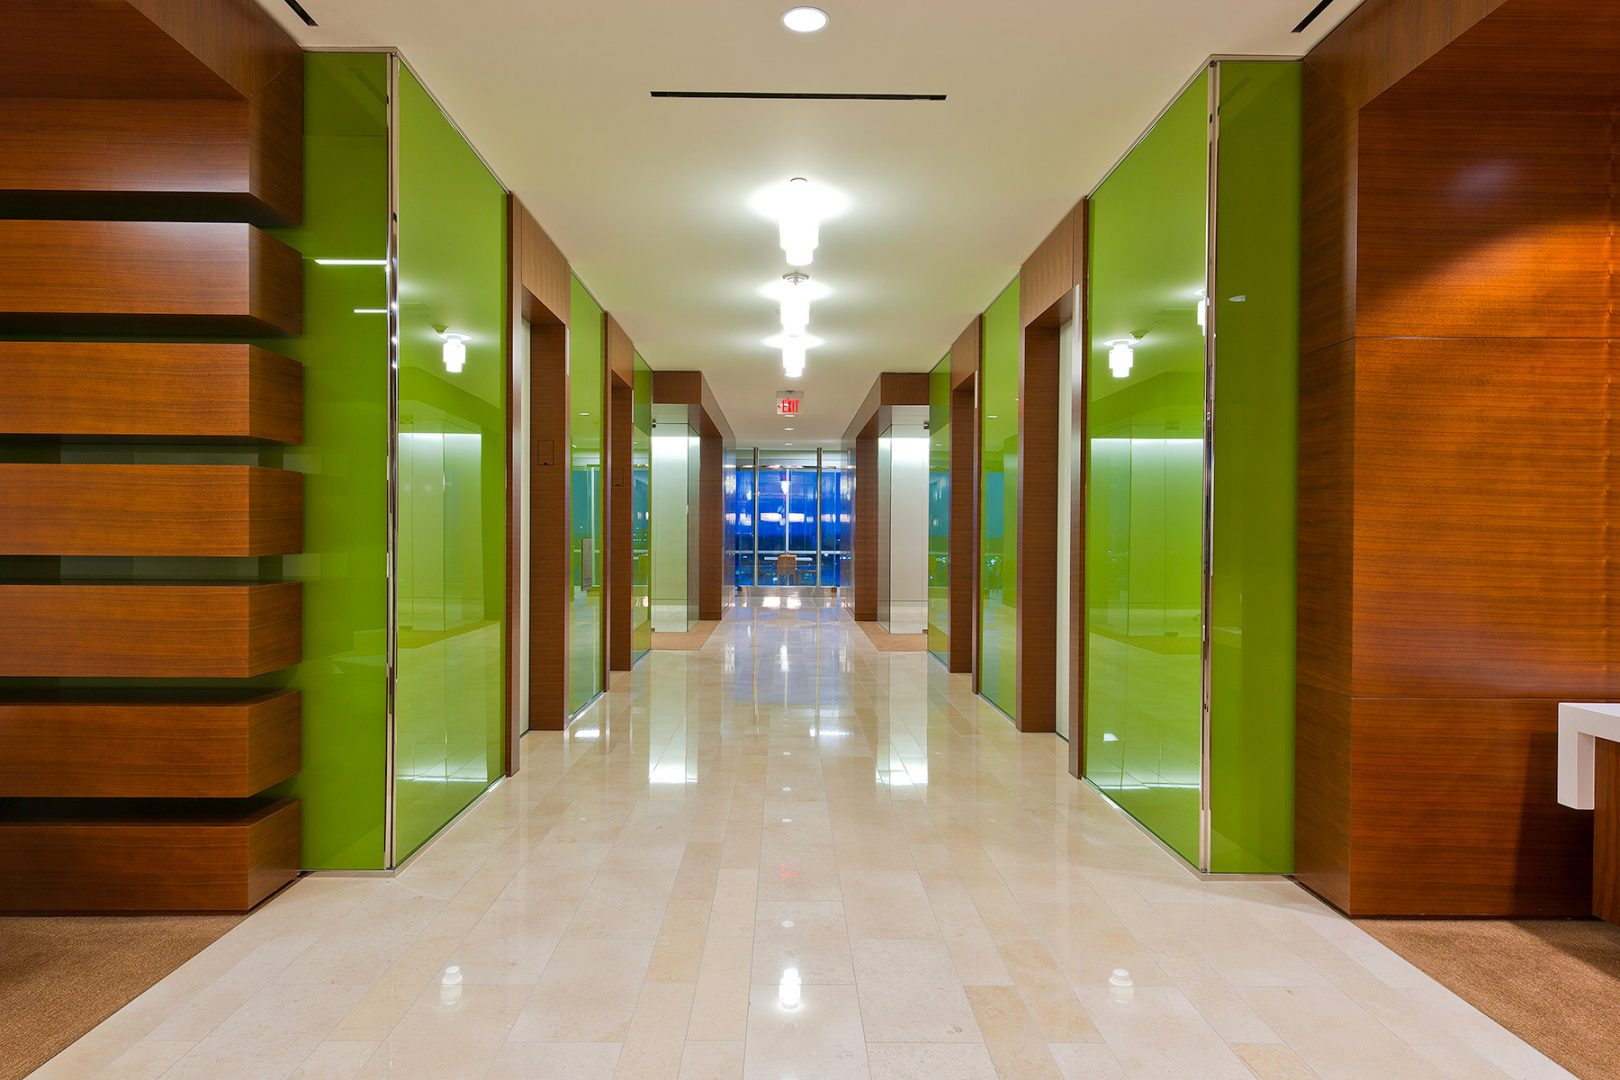 Workplace Office Interior Design BEUSA Energy The Woodlands Green Glass Elevator Lobby Entrance